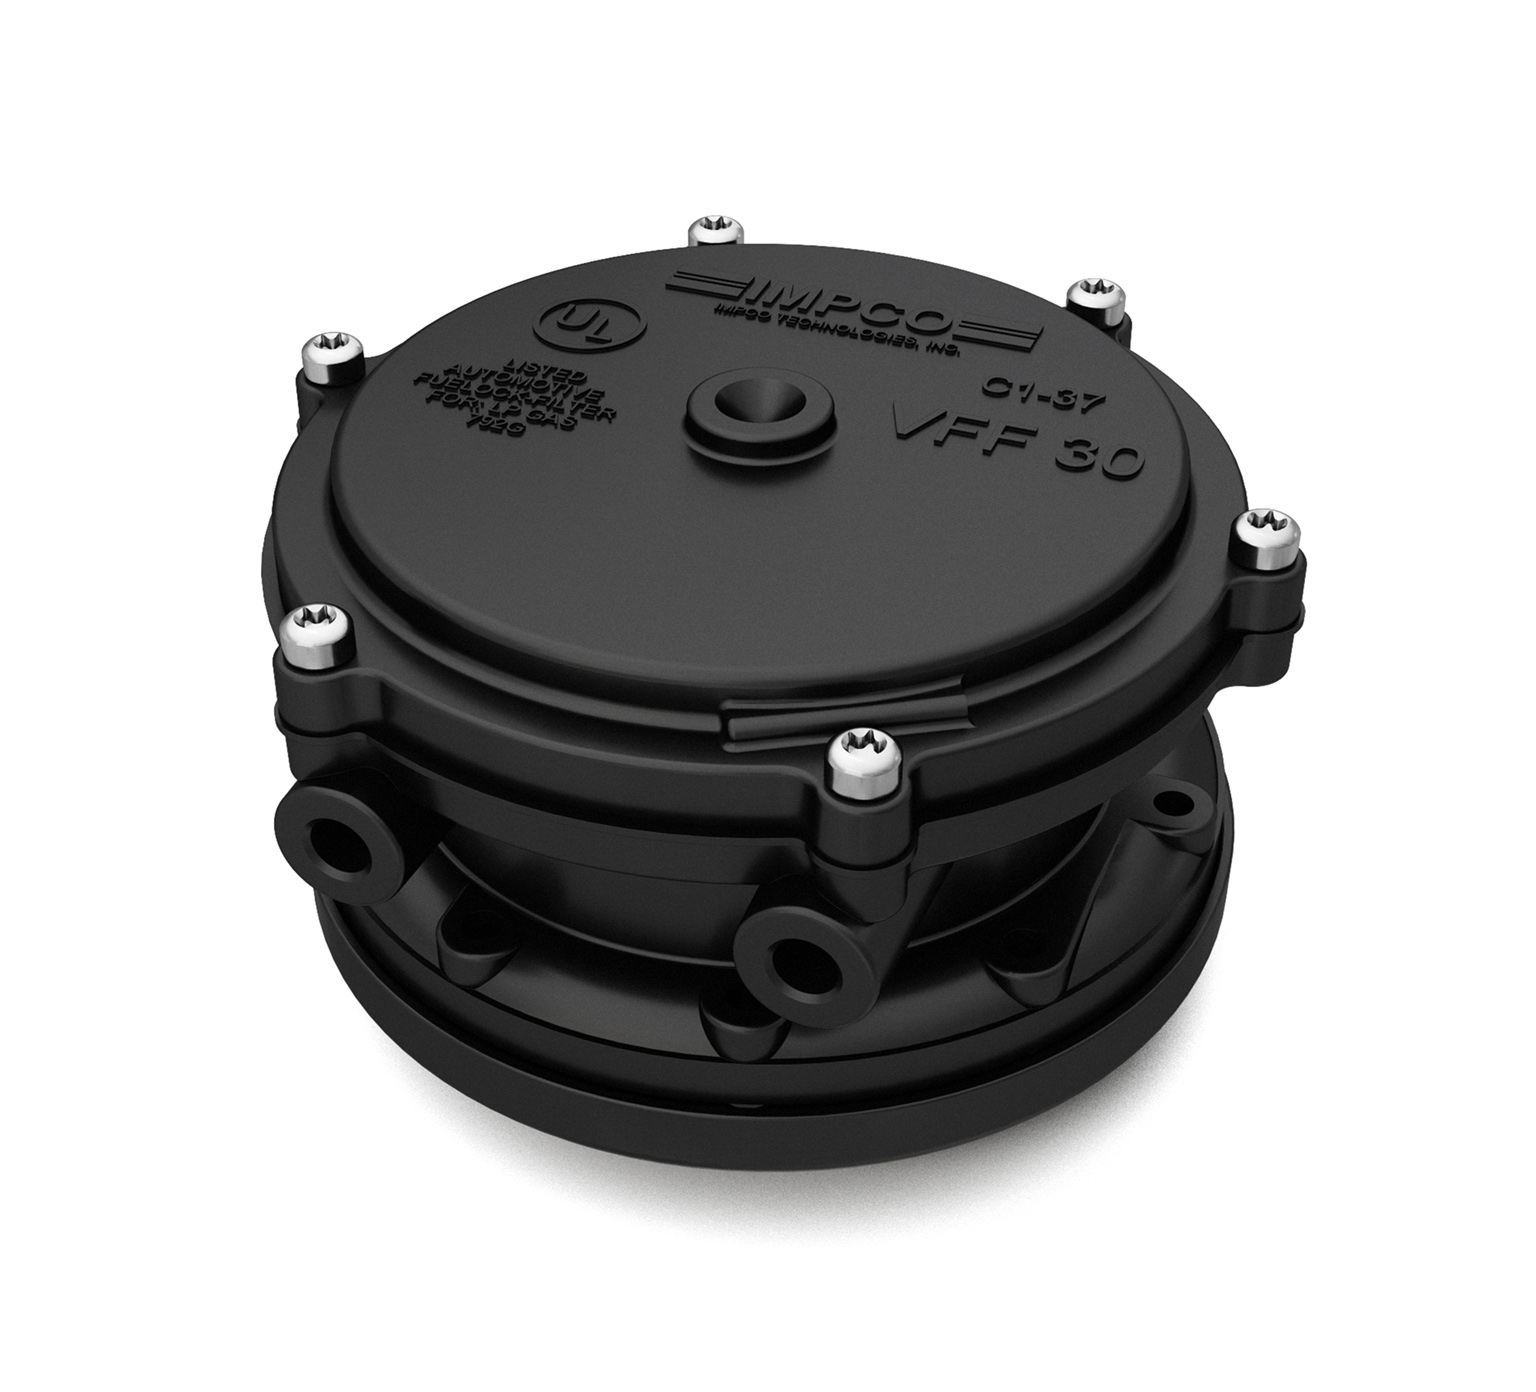 73020 Fuel Lock Filter - 2.6 in alt 1